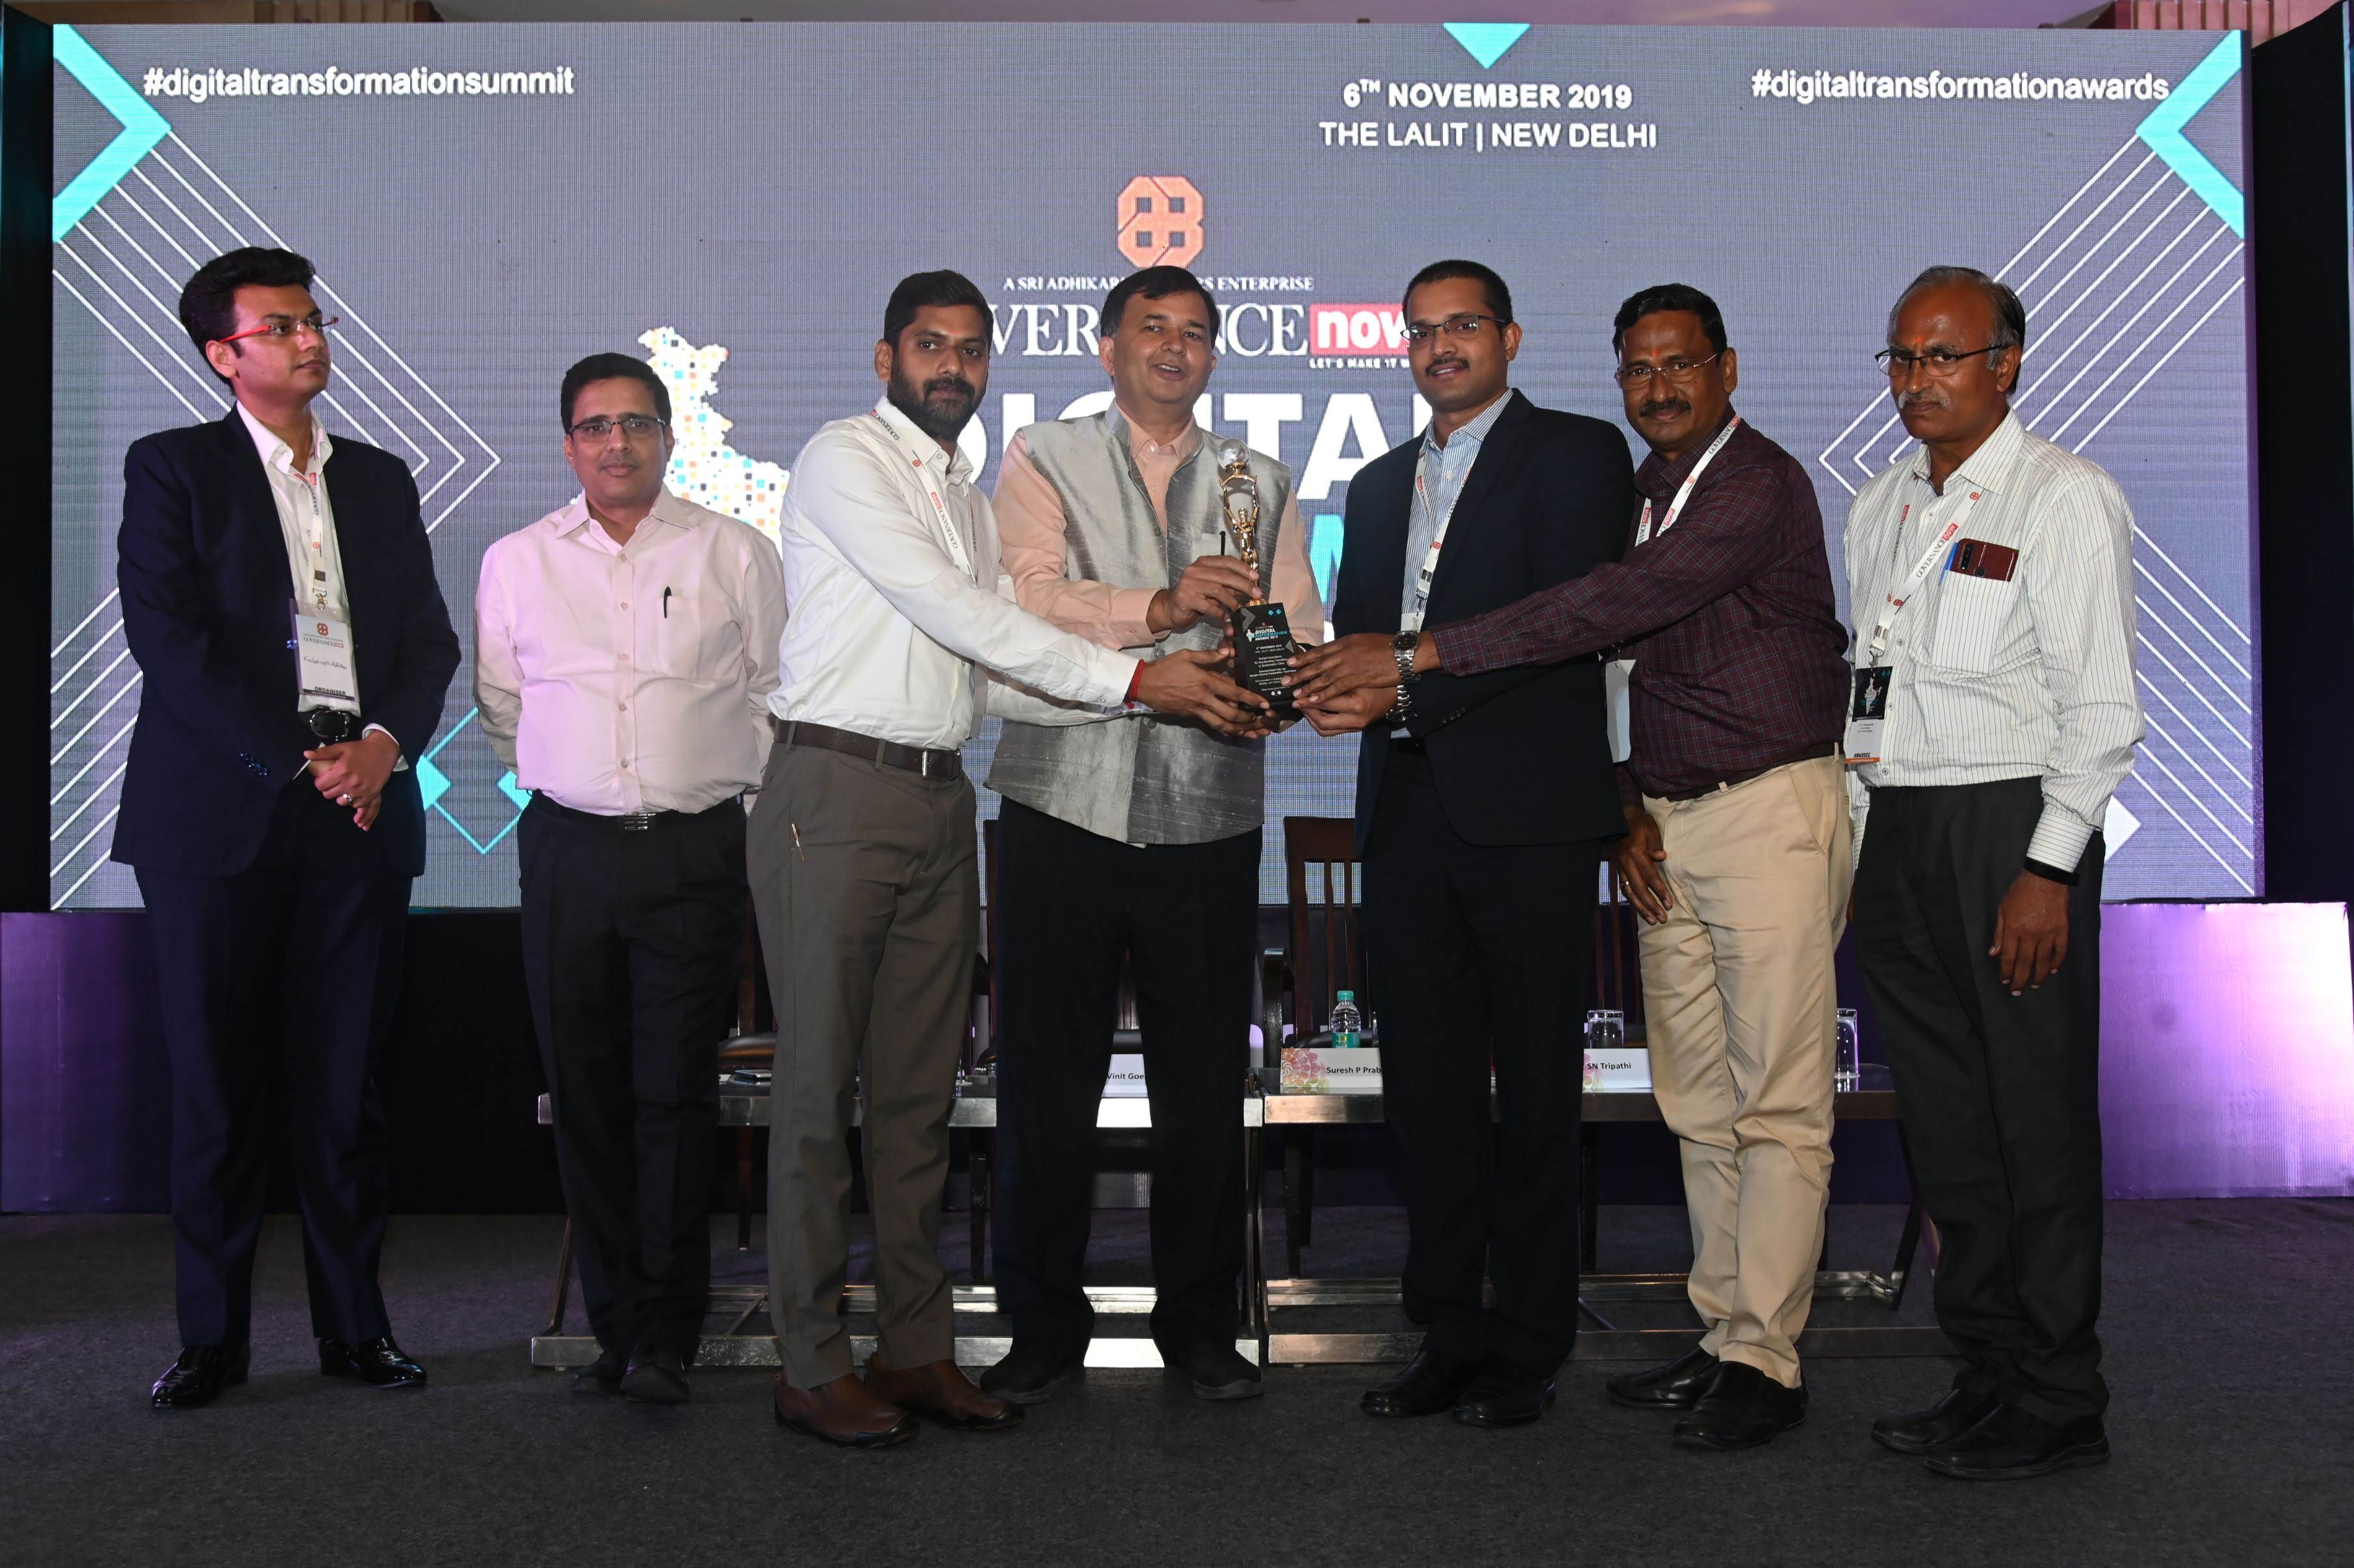 Digital Transformation Award 2019